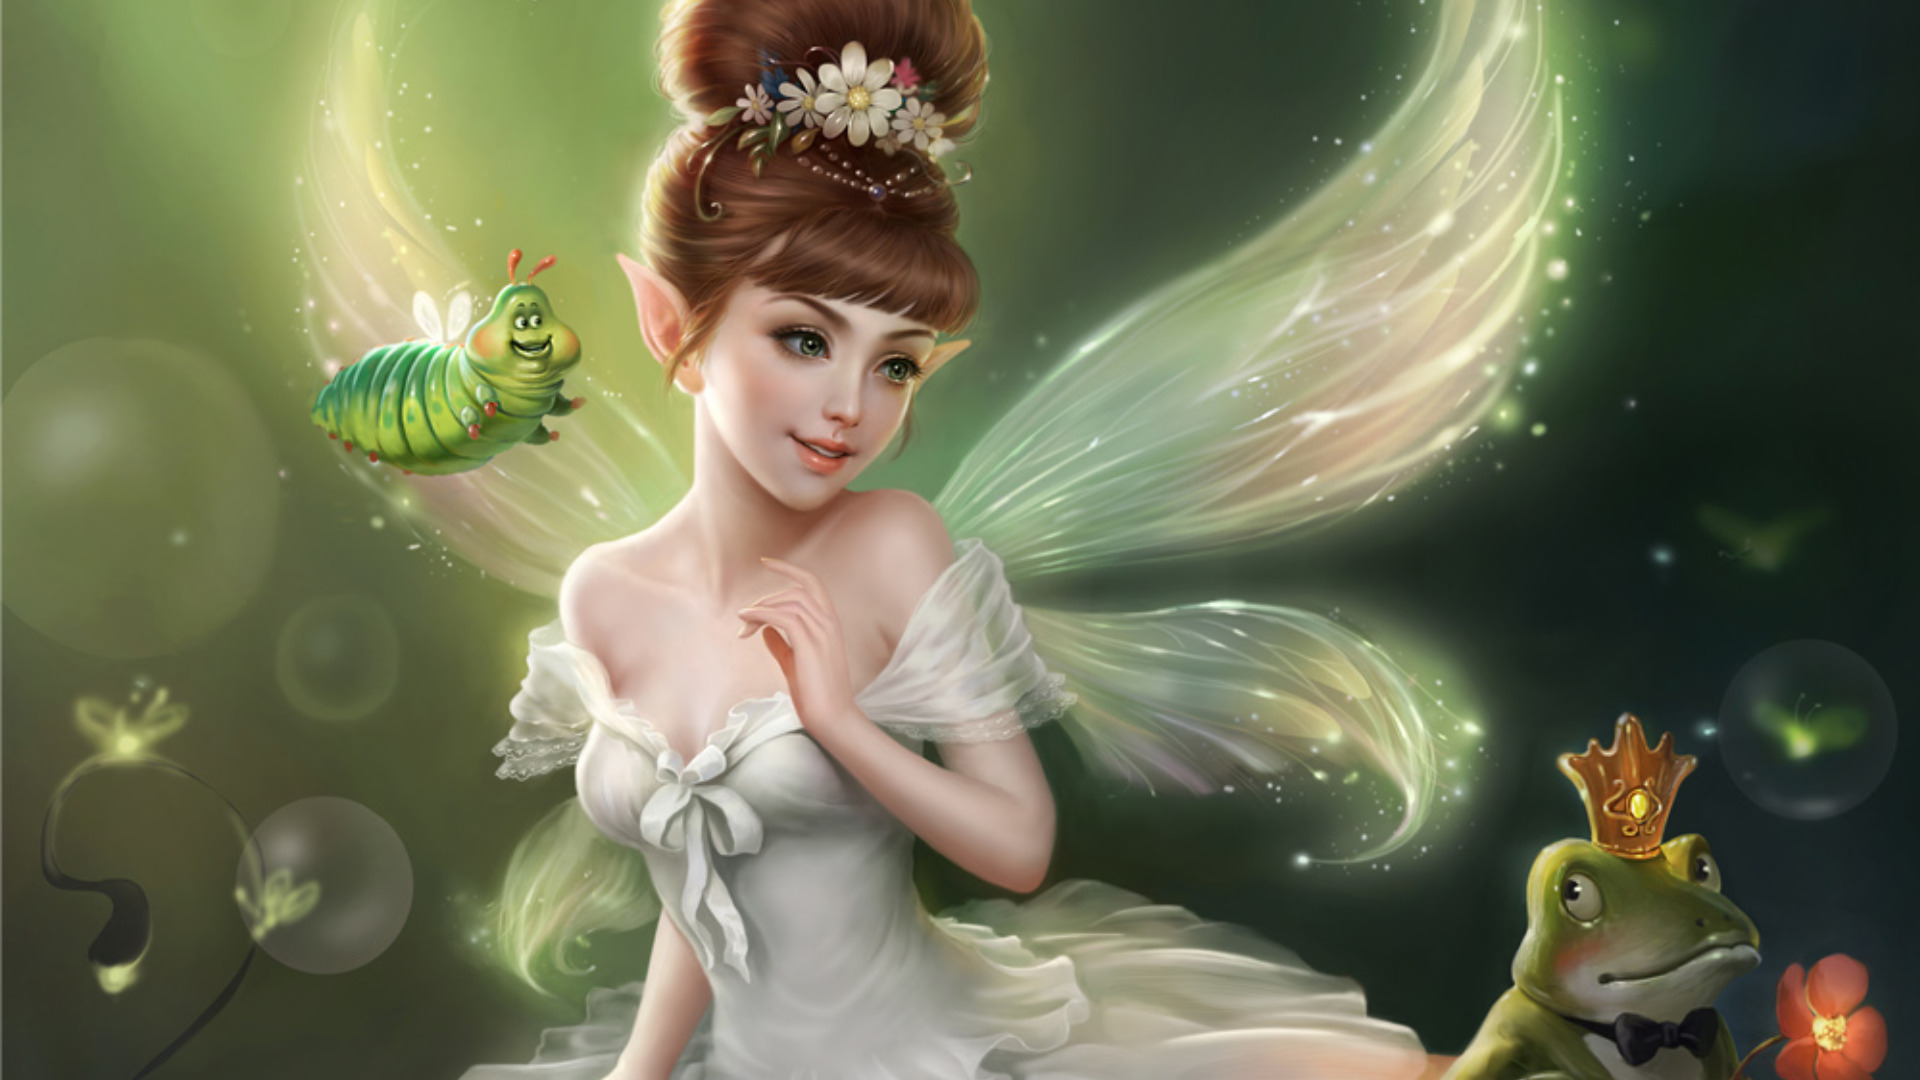 Fairy wallpaper high definition high quality widescreen - 3d fantasy wallpaper ...